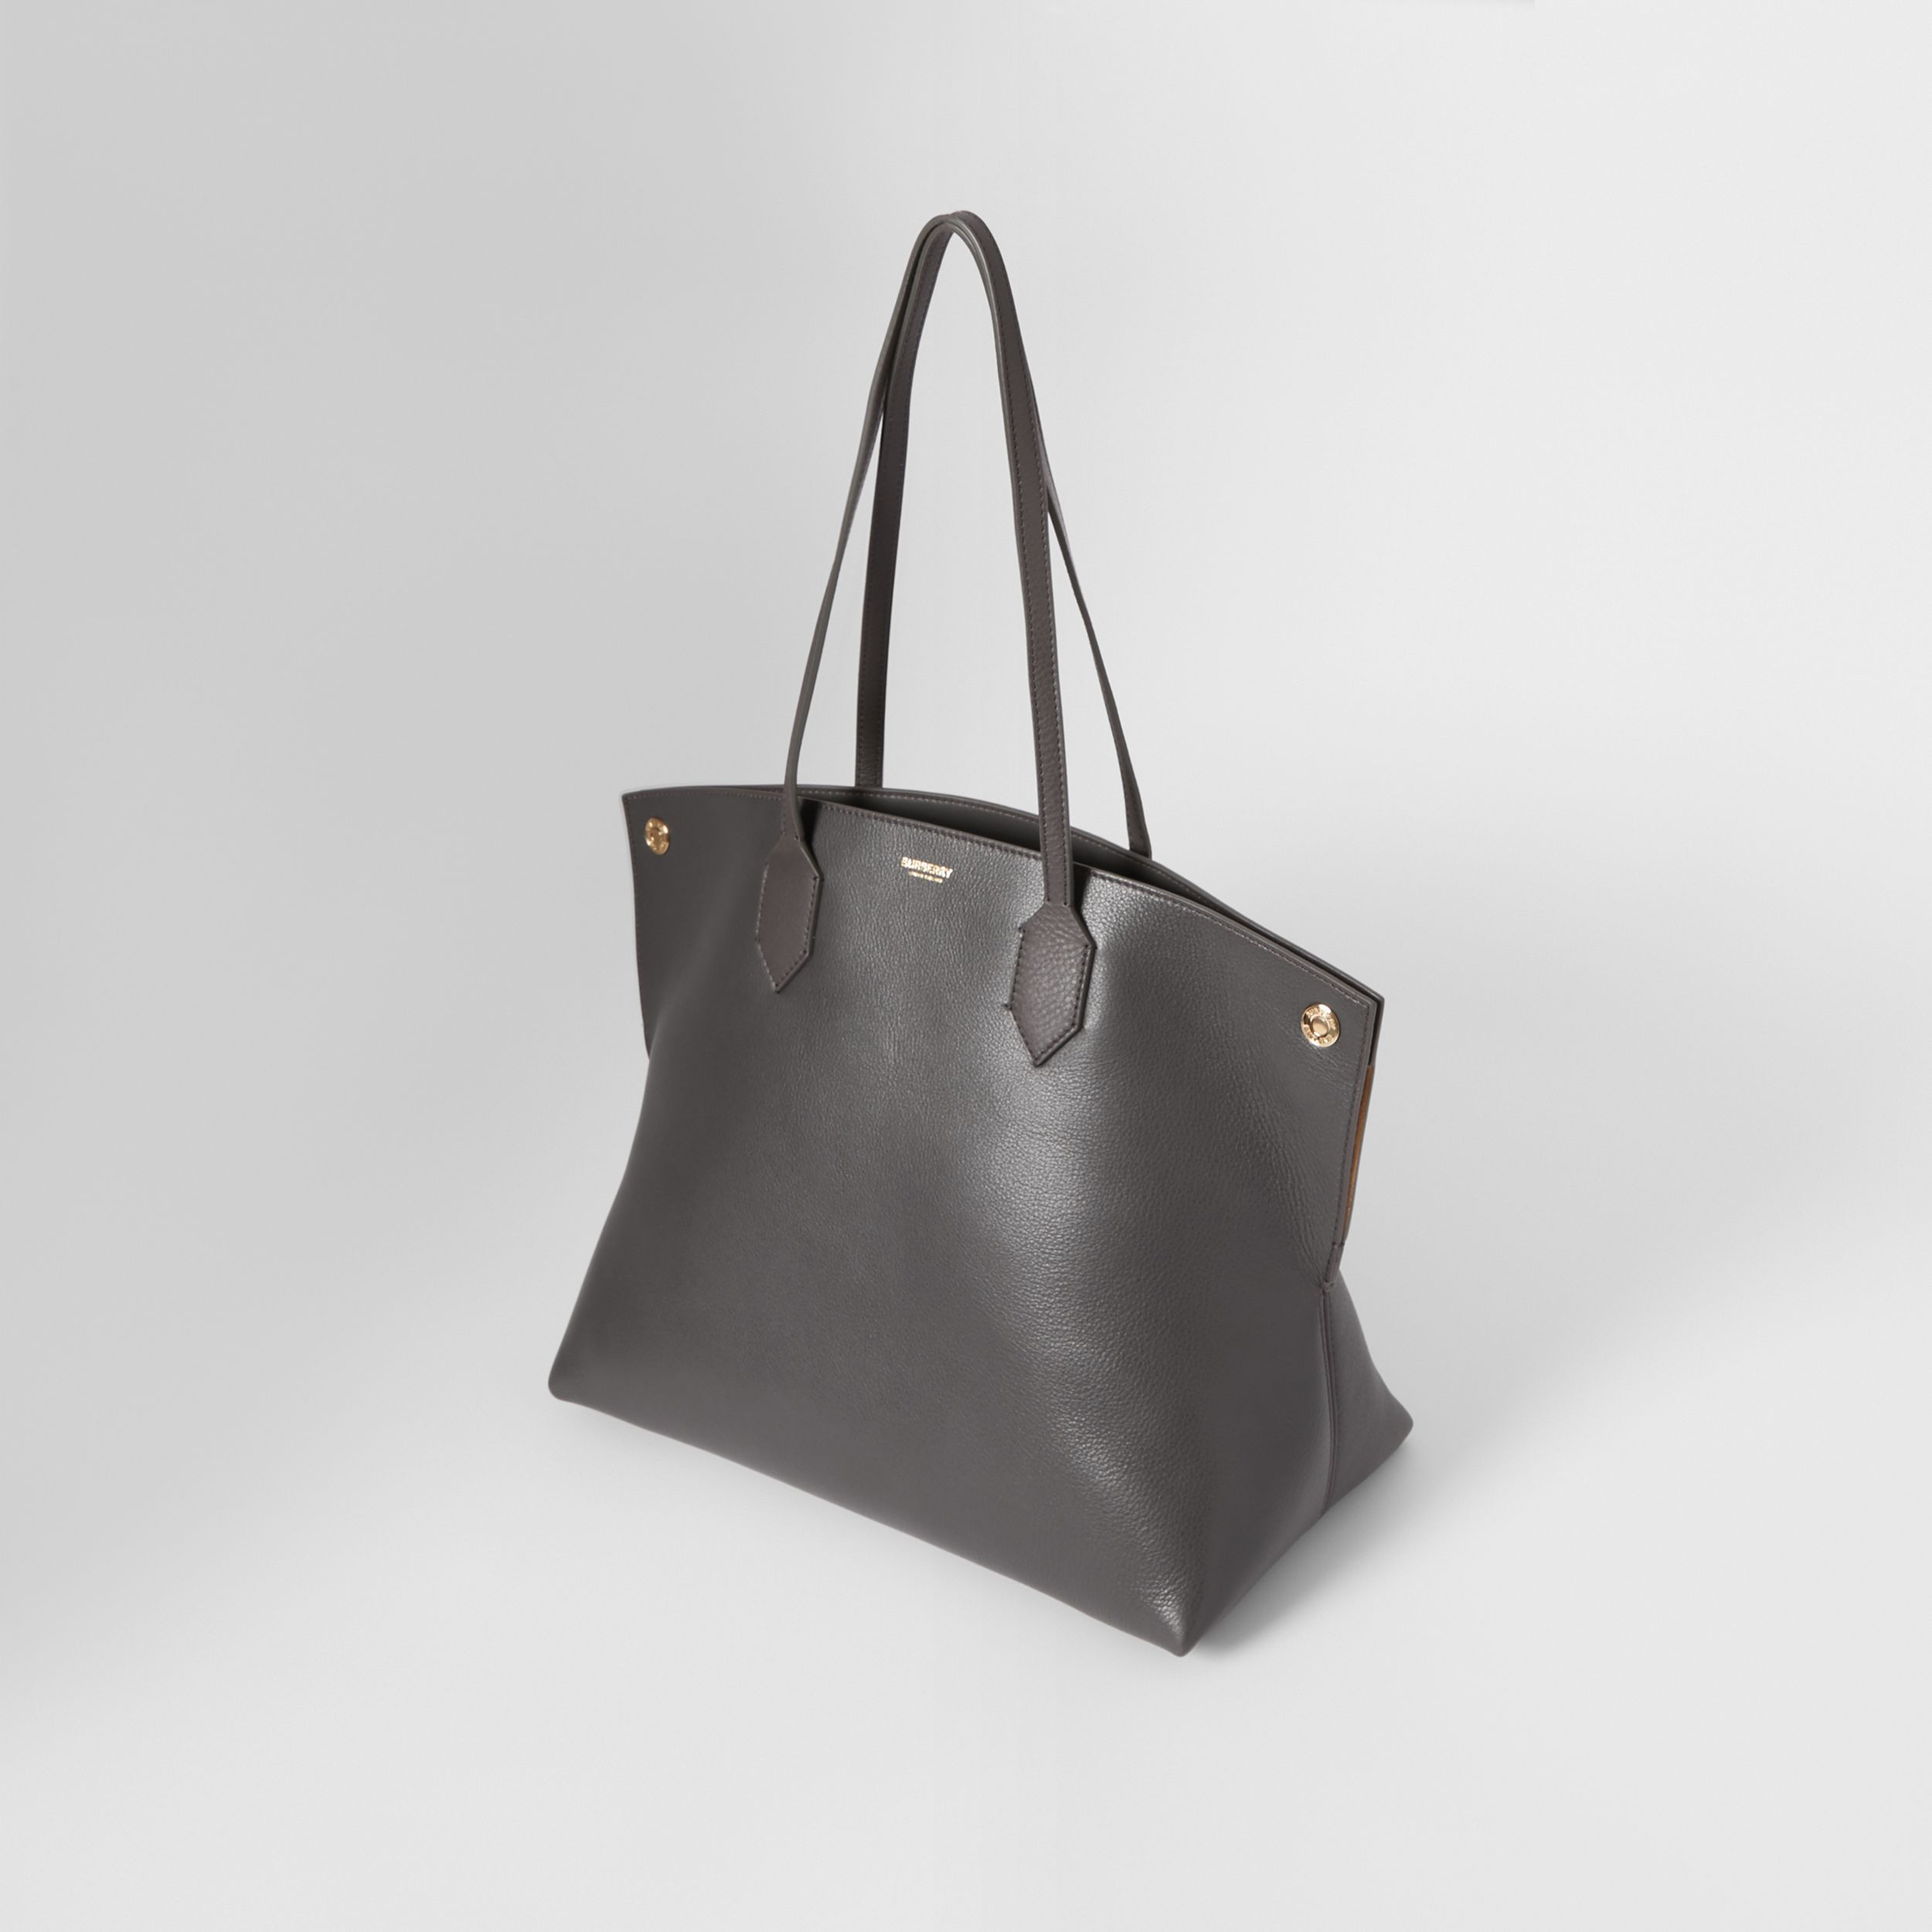 Medium Leather Society Tote in Anthracite - Women | Burberry - 4